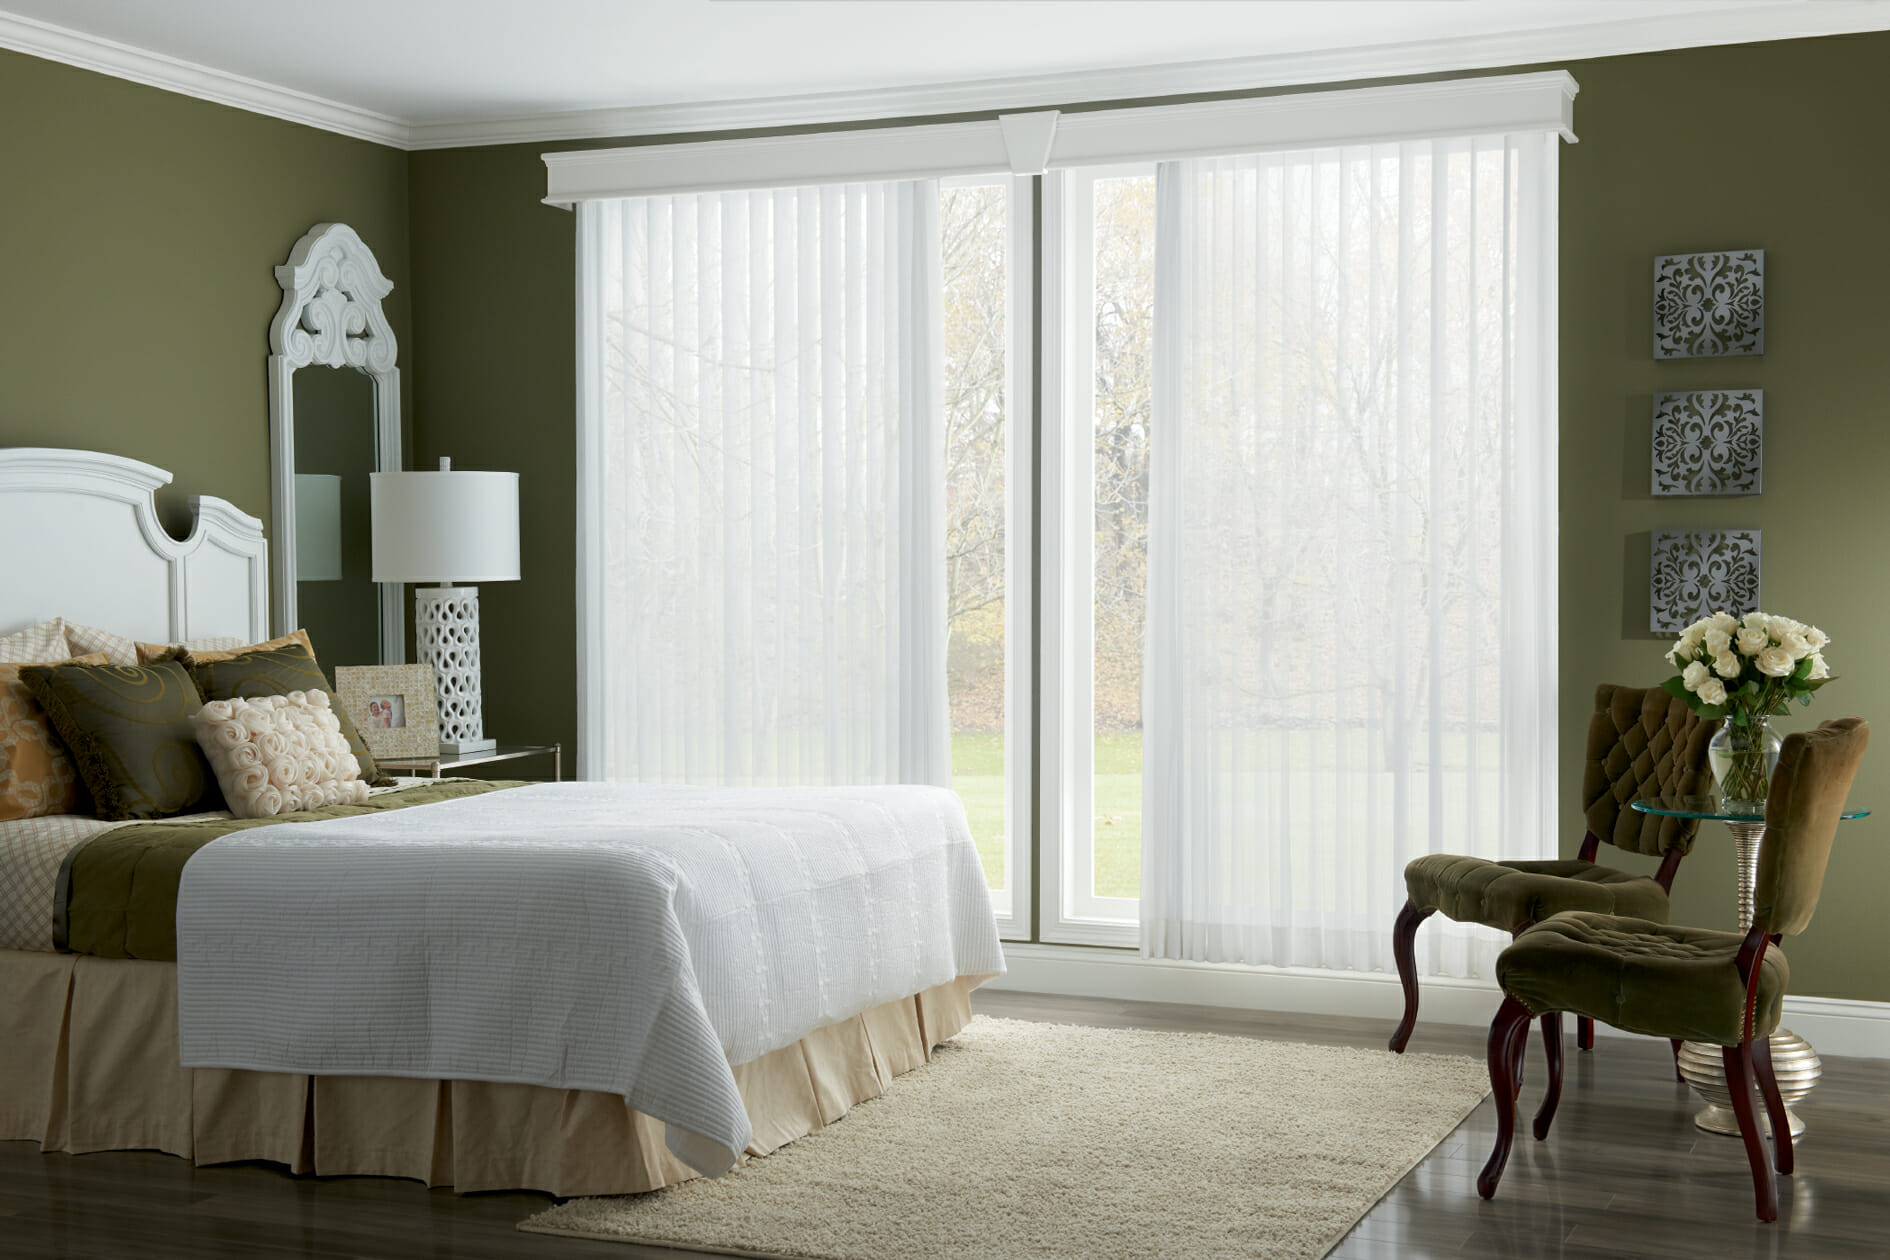 motorized vertical blinds patio door vertical sheer shadings from graber with wood valance blinds blind mice window coverings